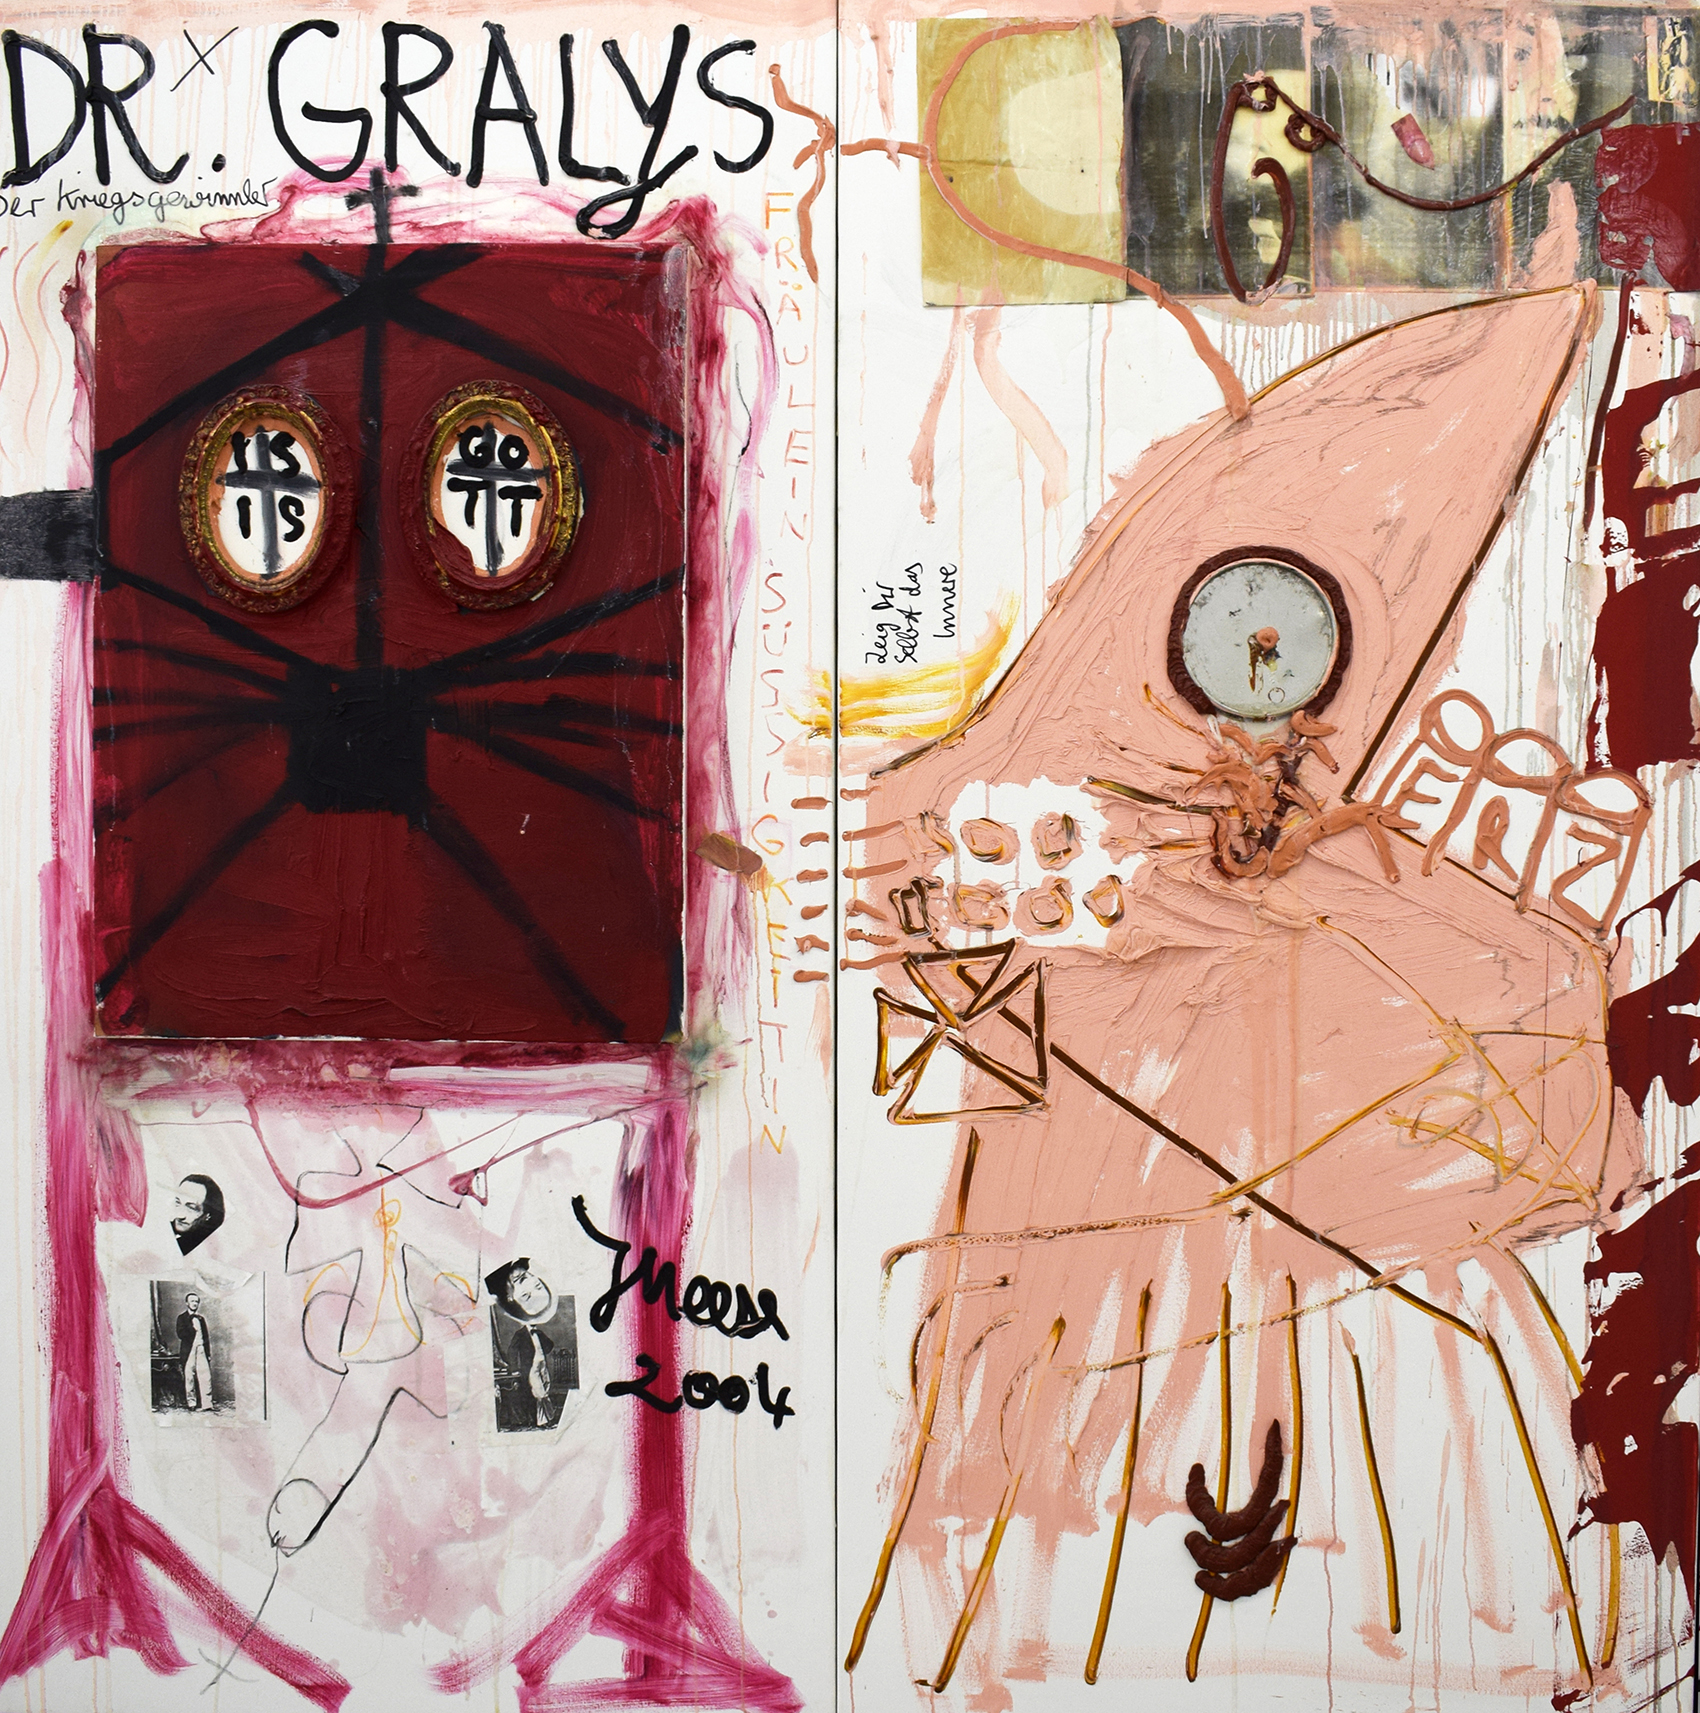 2004-2005, mixed media on canvas, 180 x 180 cm